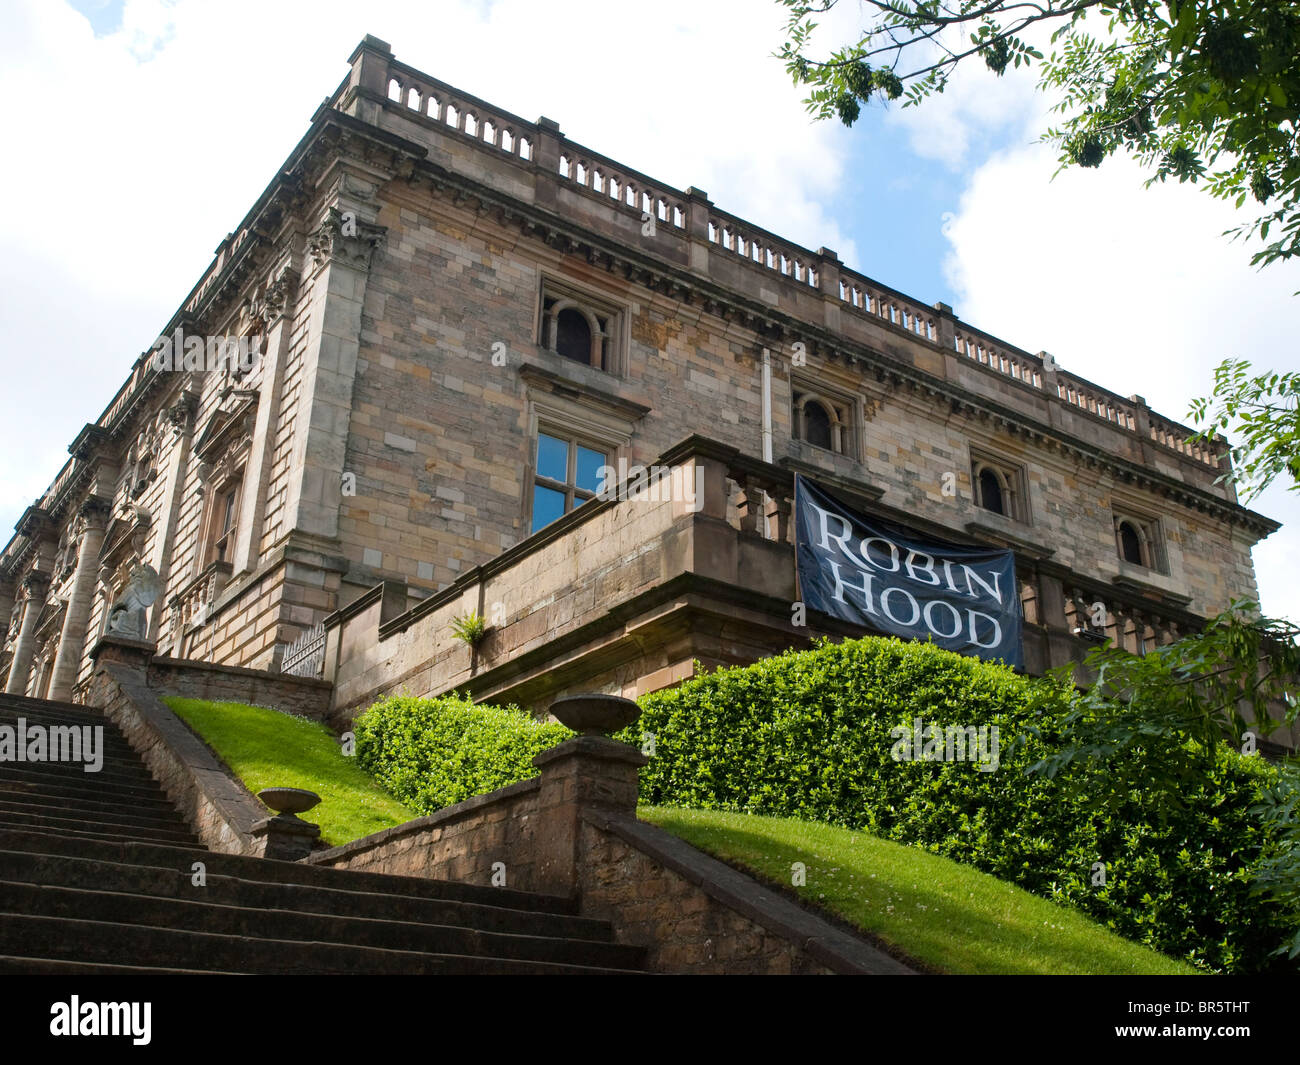 Nottingham Castle, Nottinghamshire England UK - Stock Image